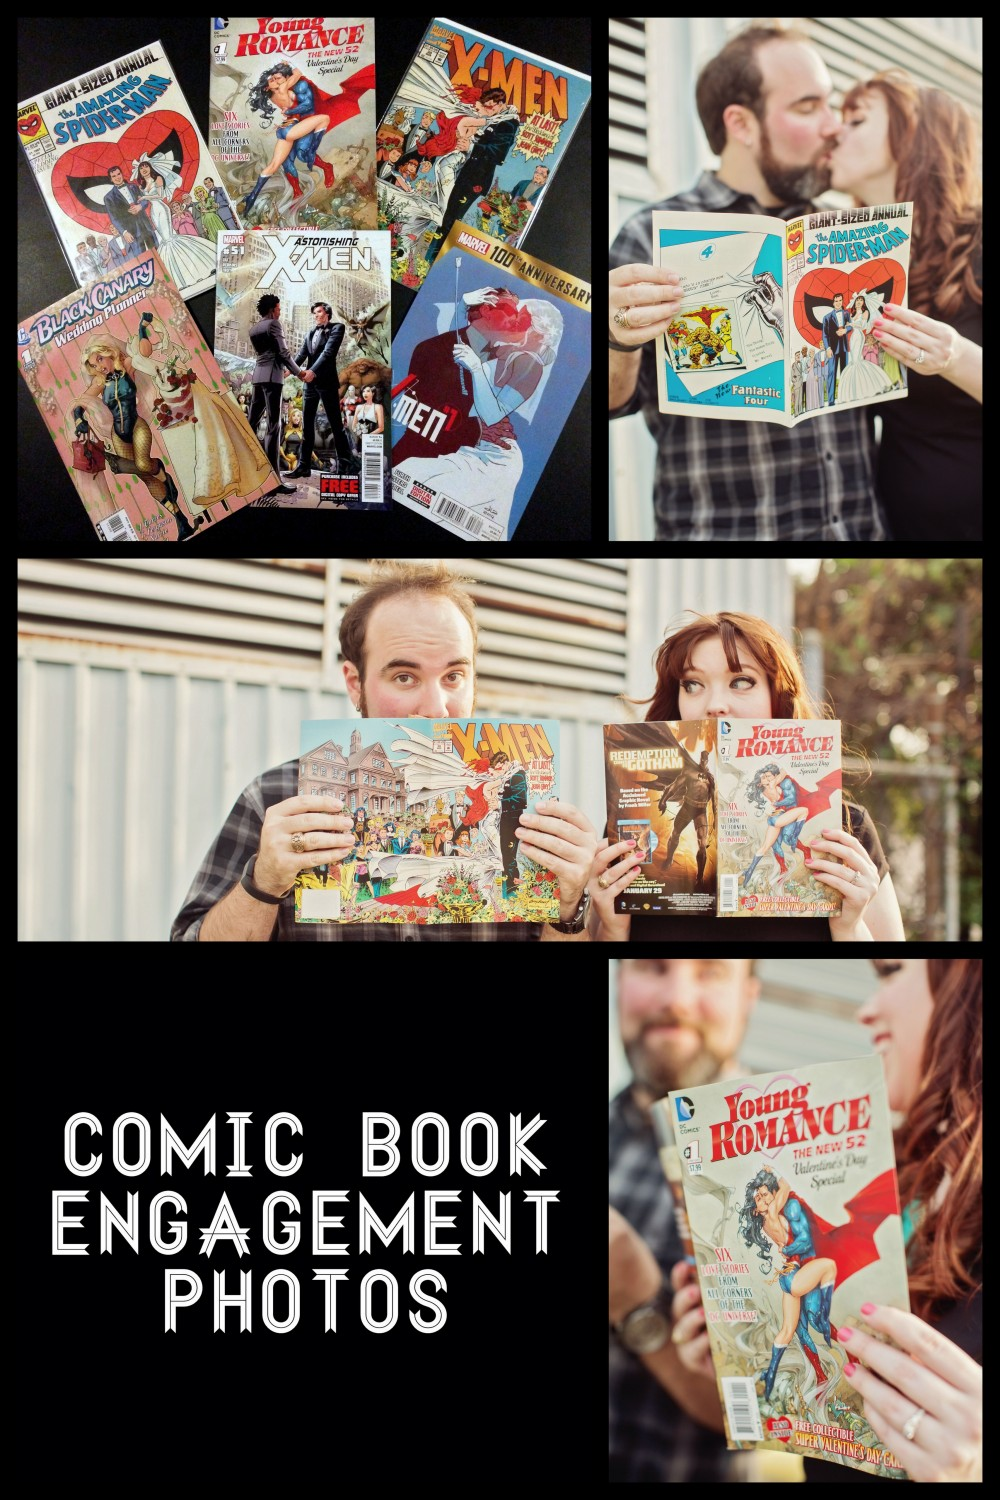 Comic Book covers featuring wedding art and ideas for engagement photos with comic books! qcait.com